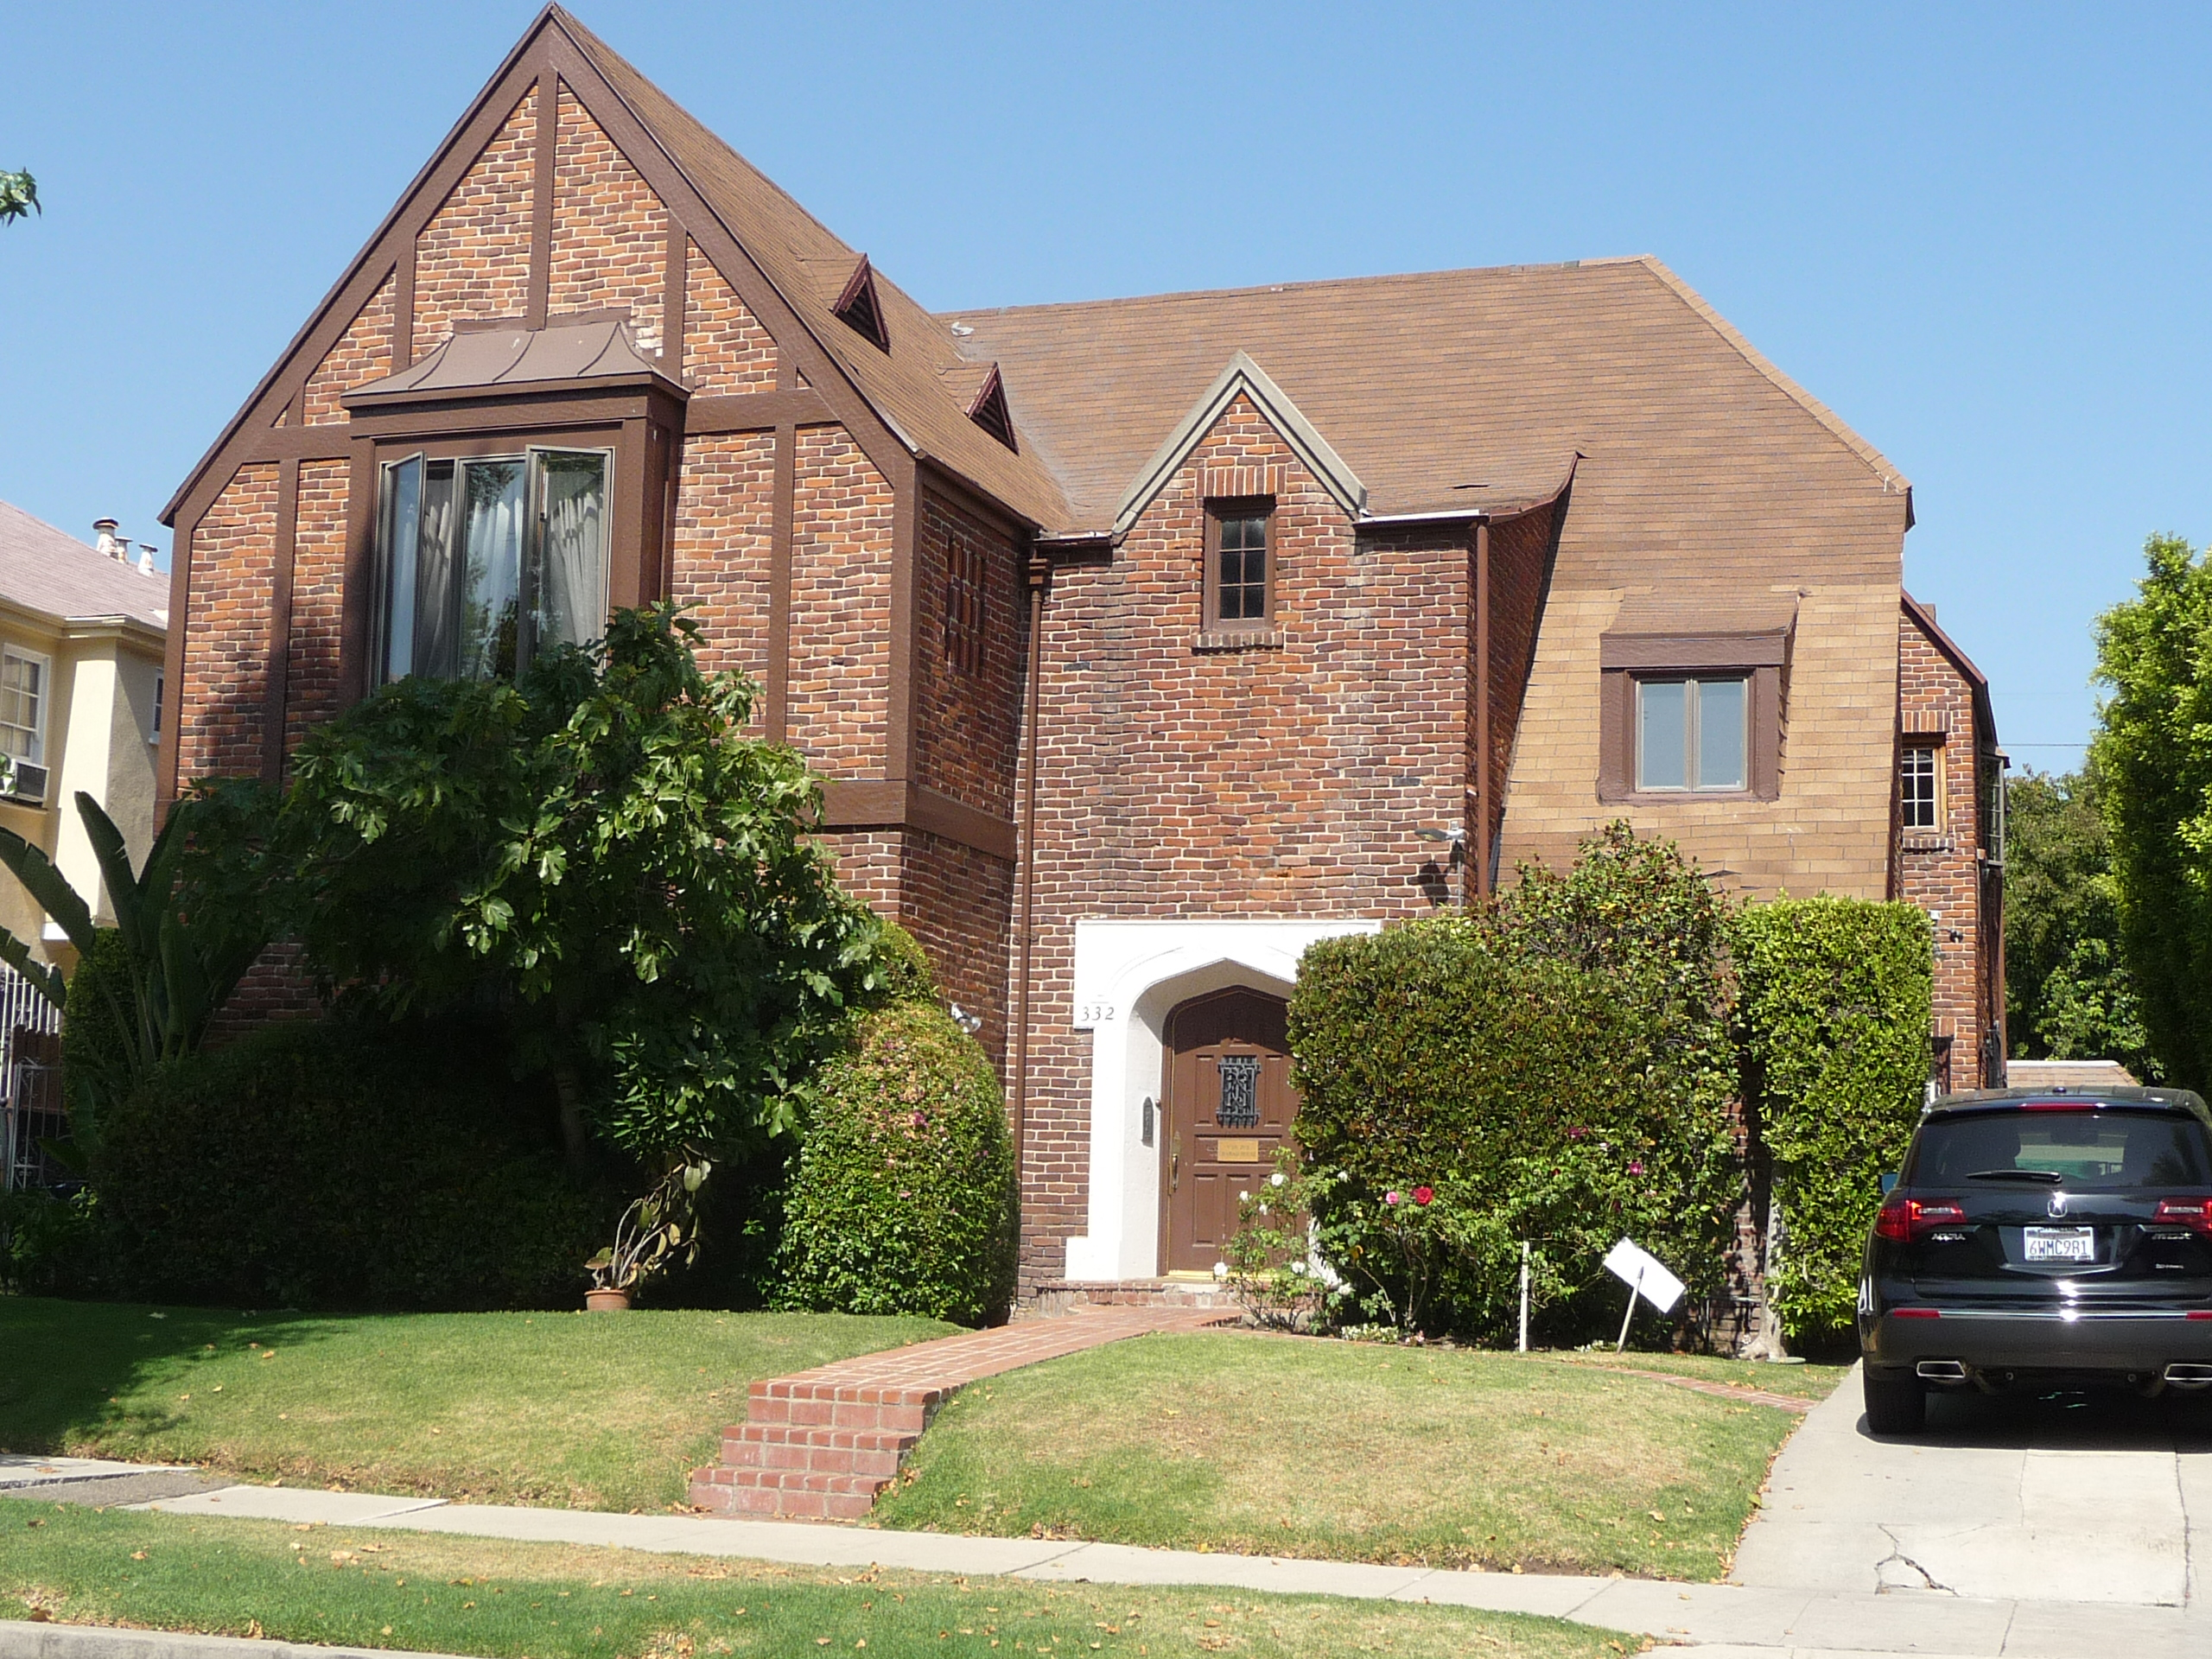 334 N MANSFIELD AVE - PHOTO